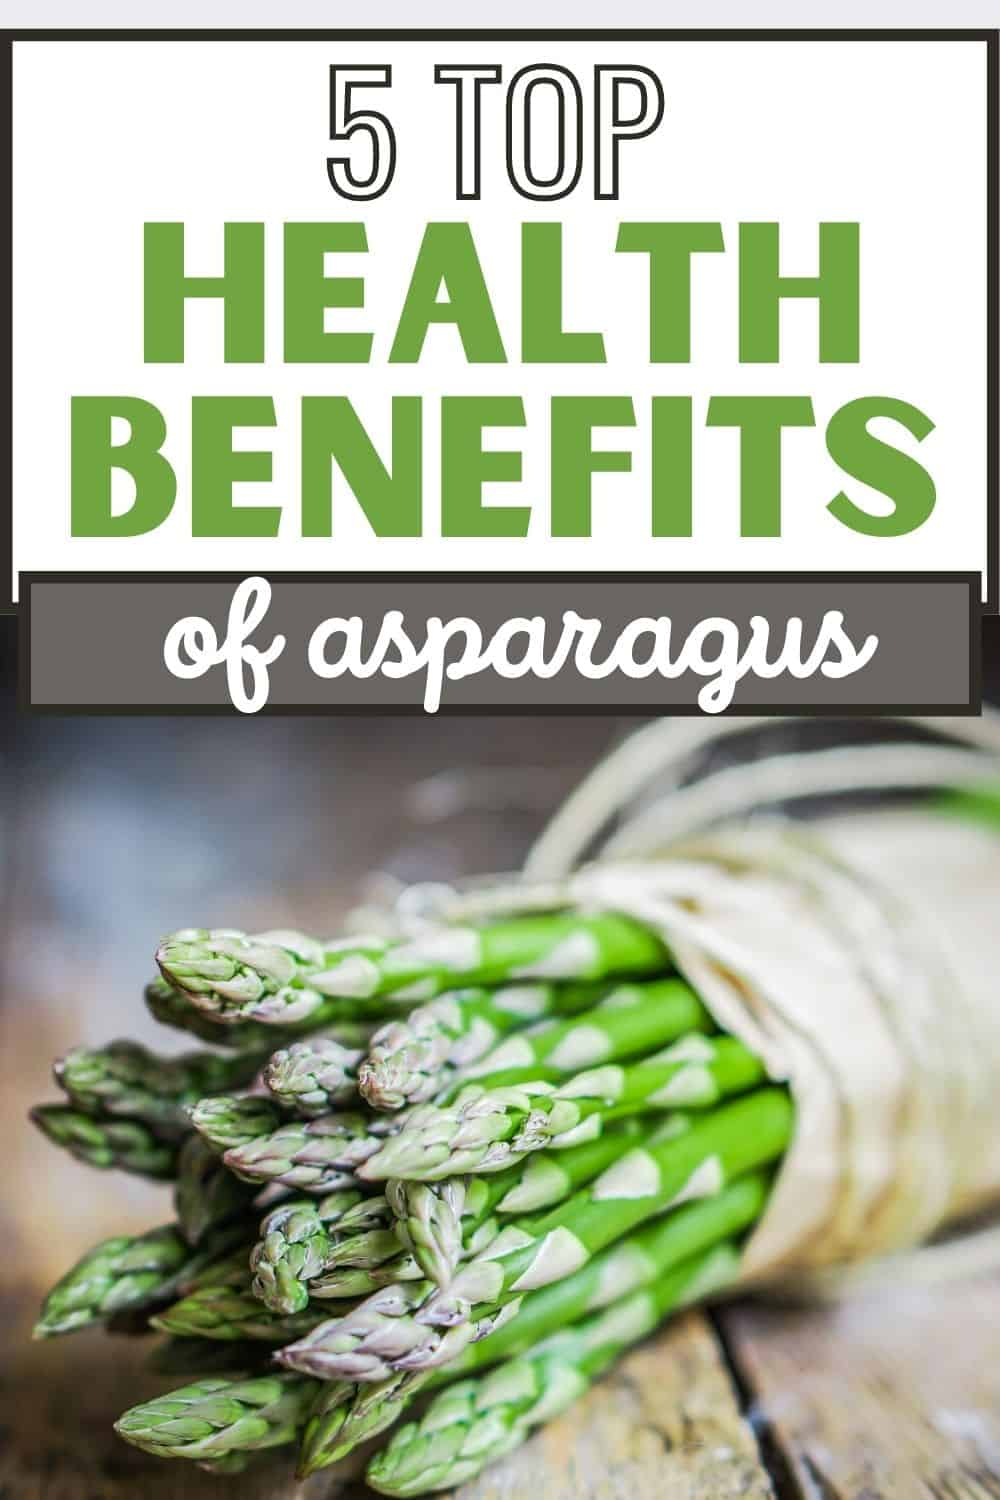 5 top health benefits of asparagus